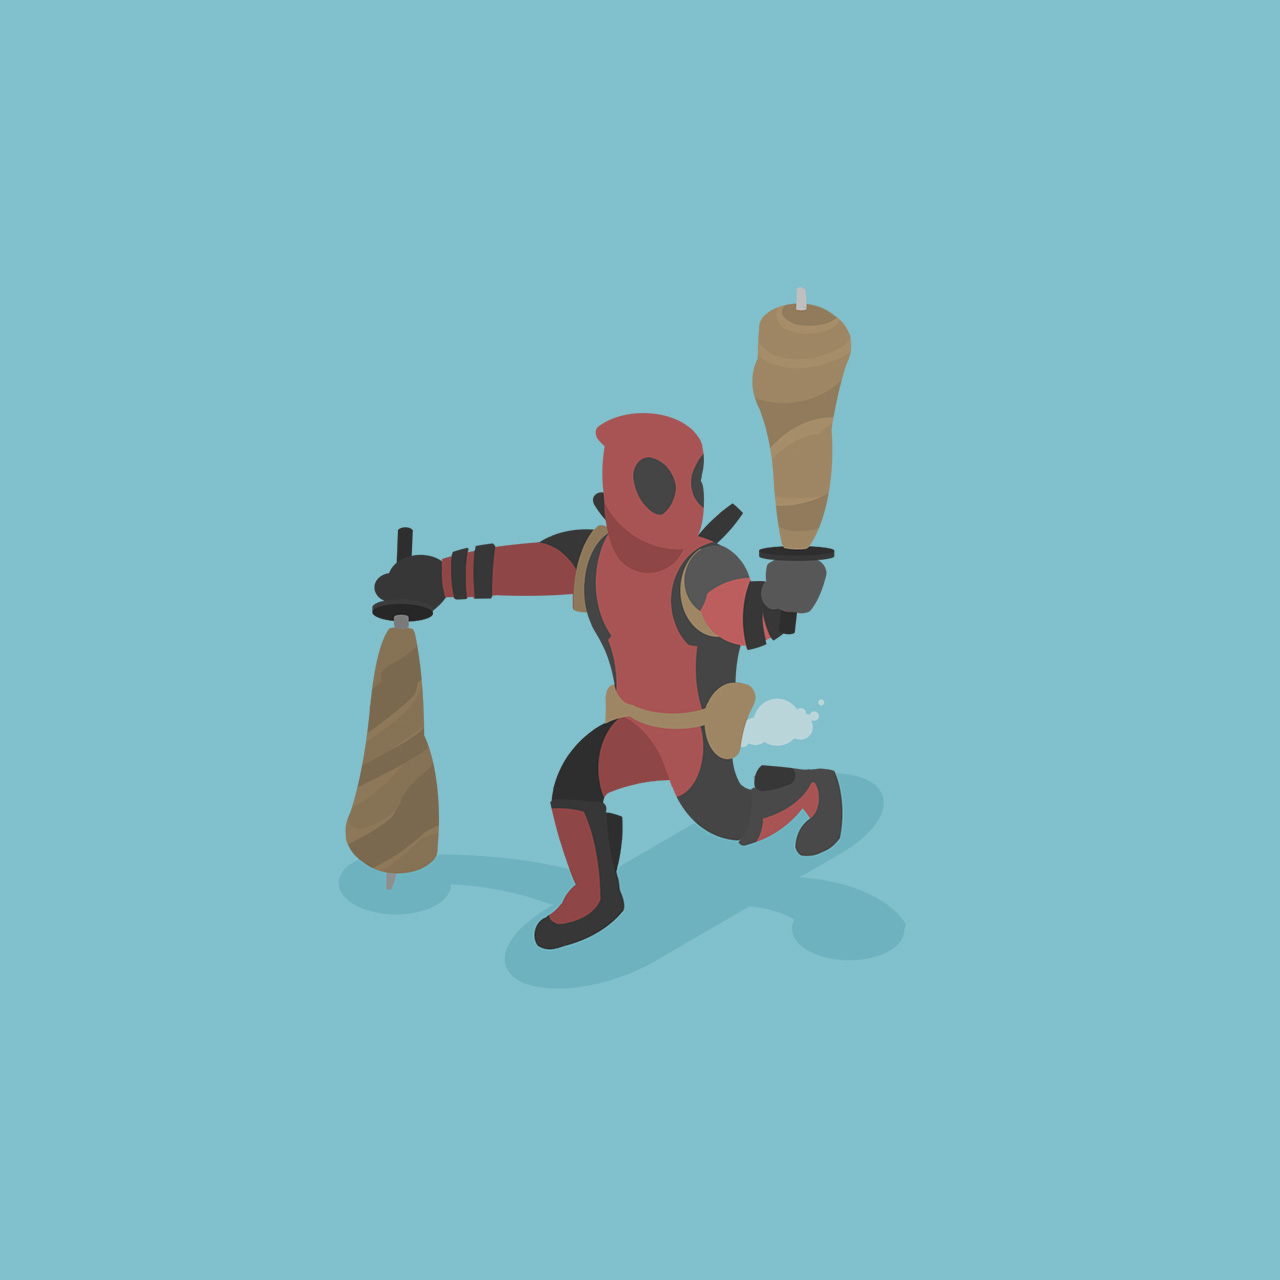 Deadpool's character